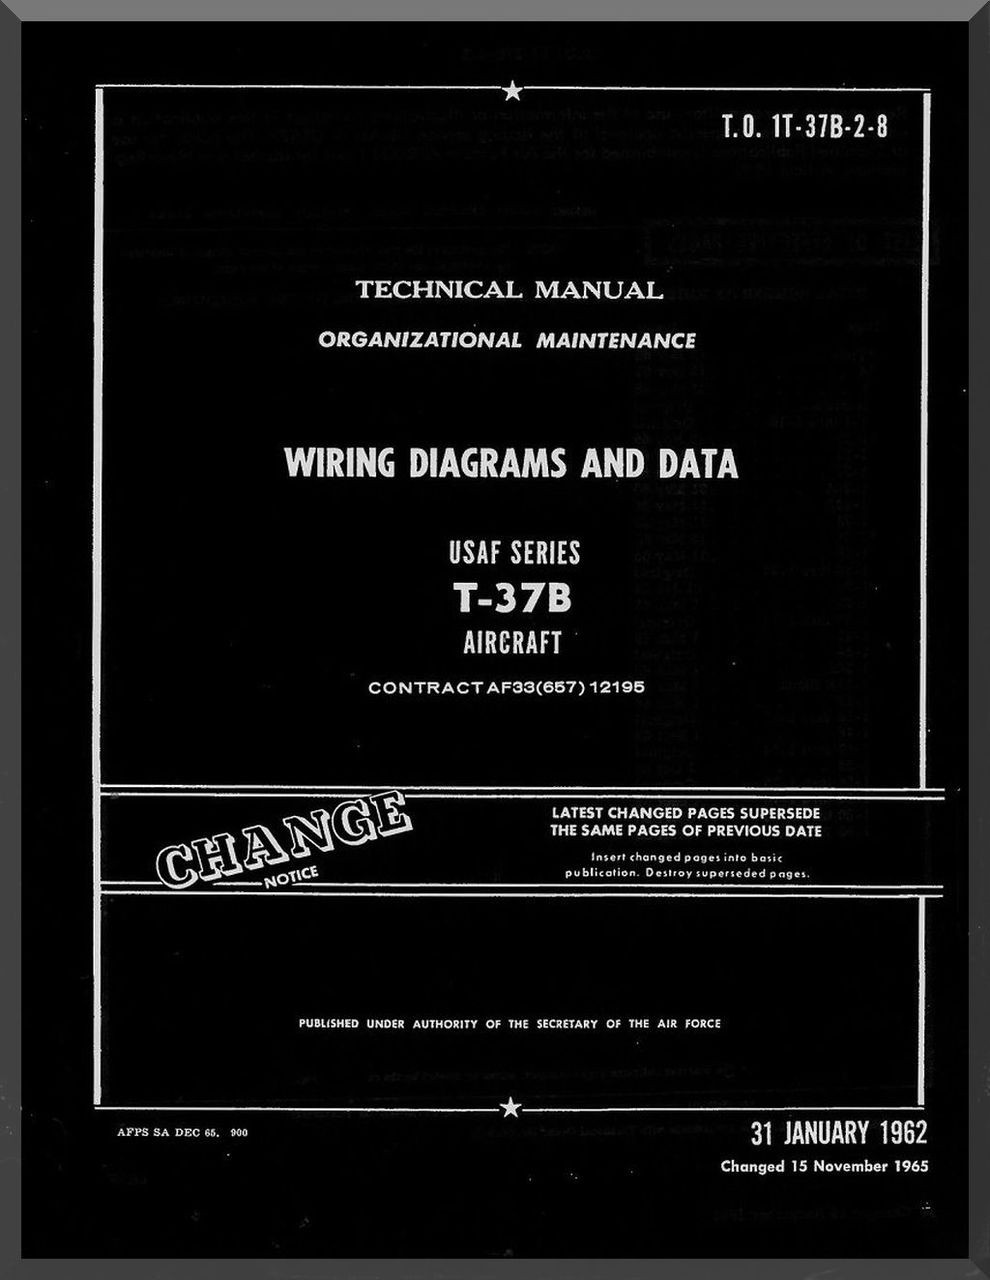 cessna t 37 b aircraft organizational maintenance manual wiring Scooter Wiring Diagram categories